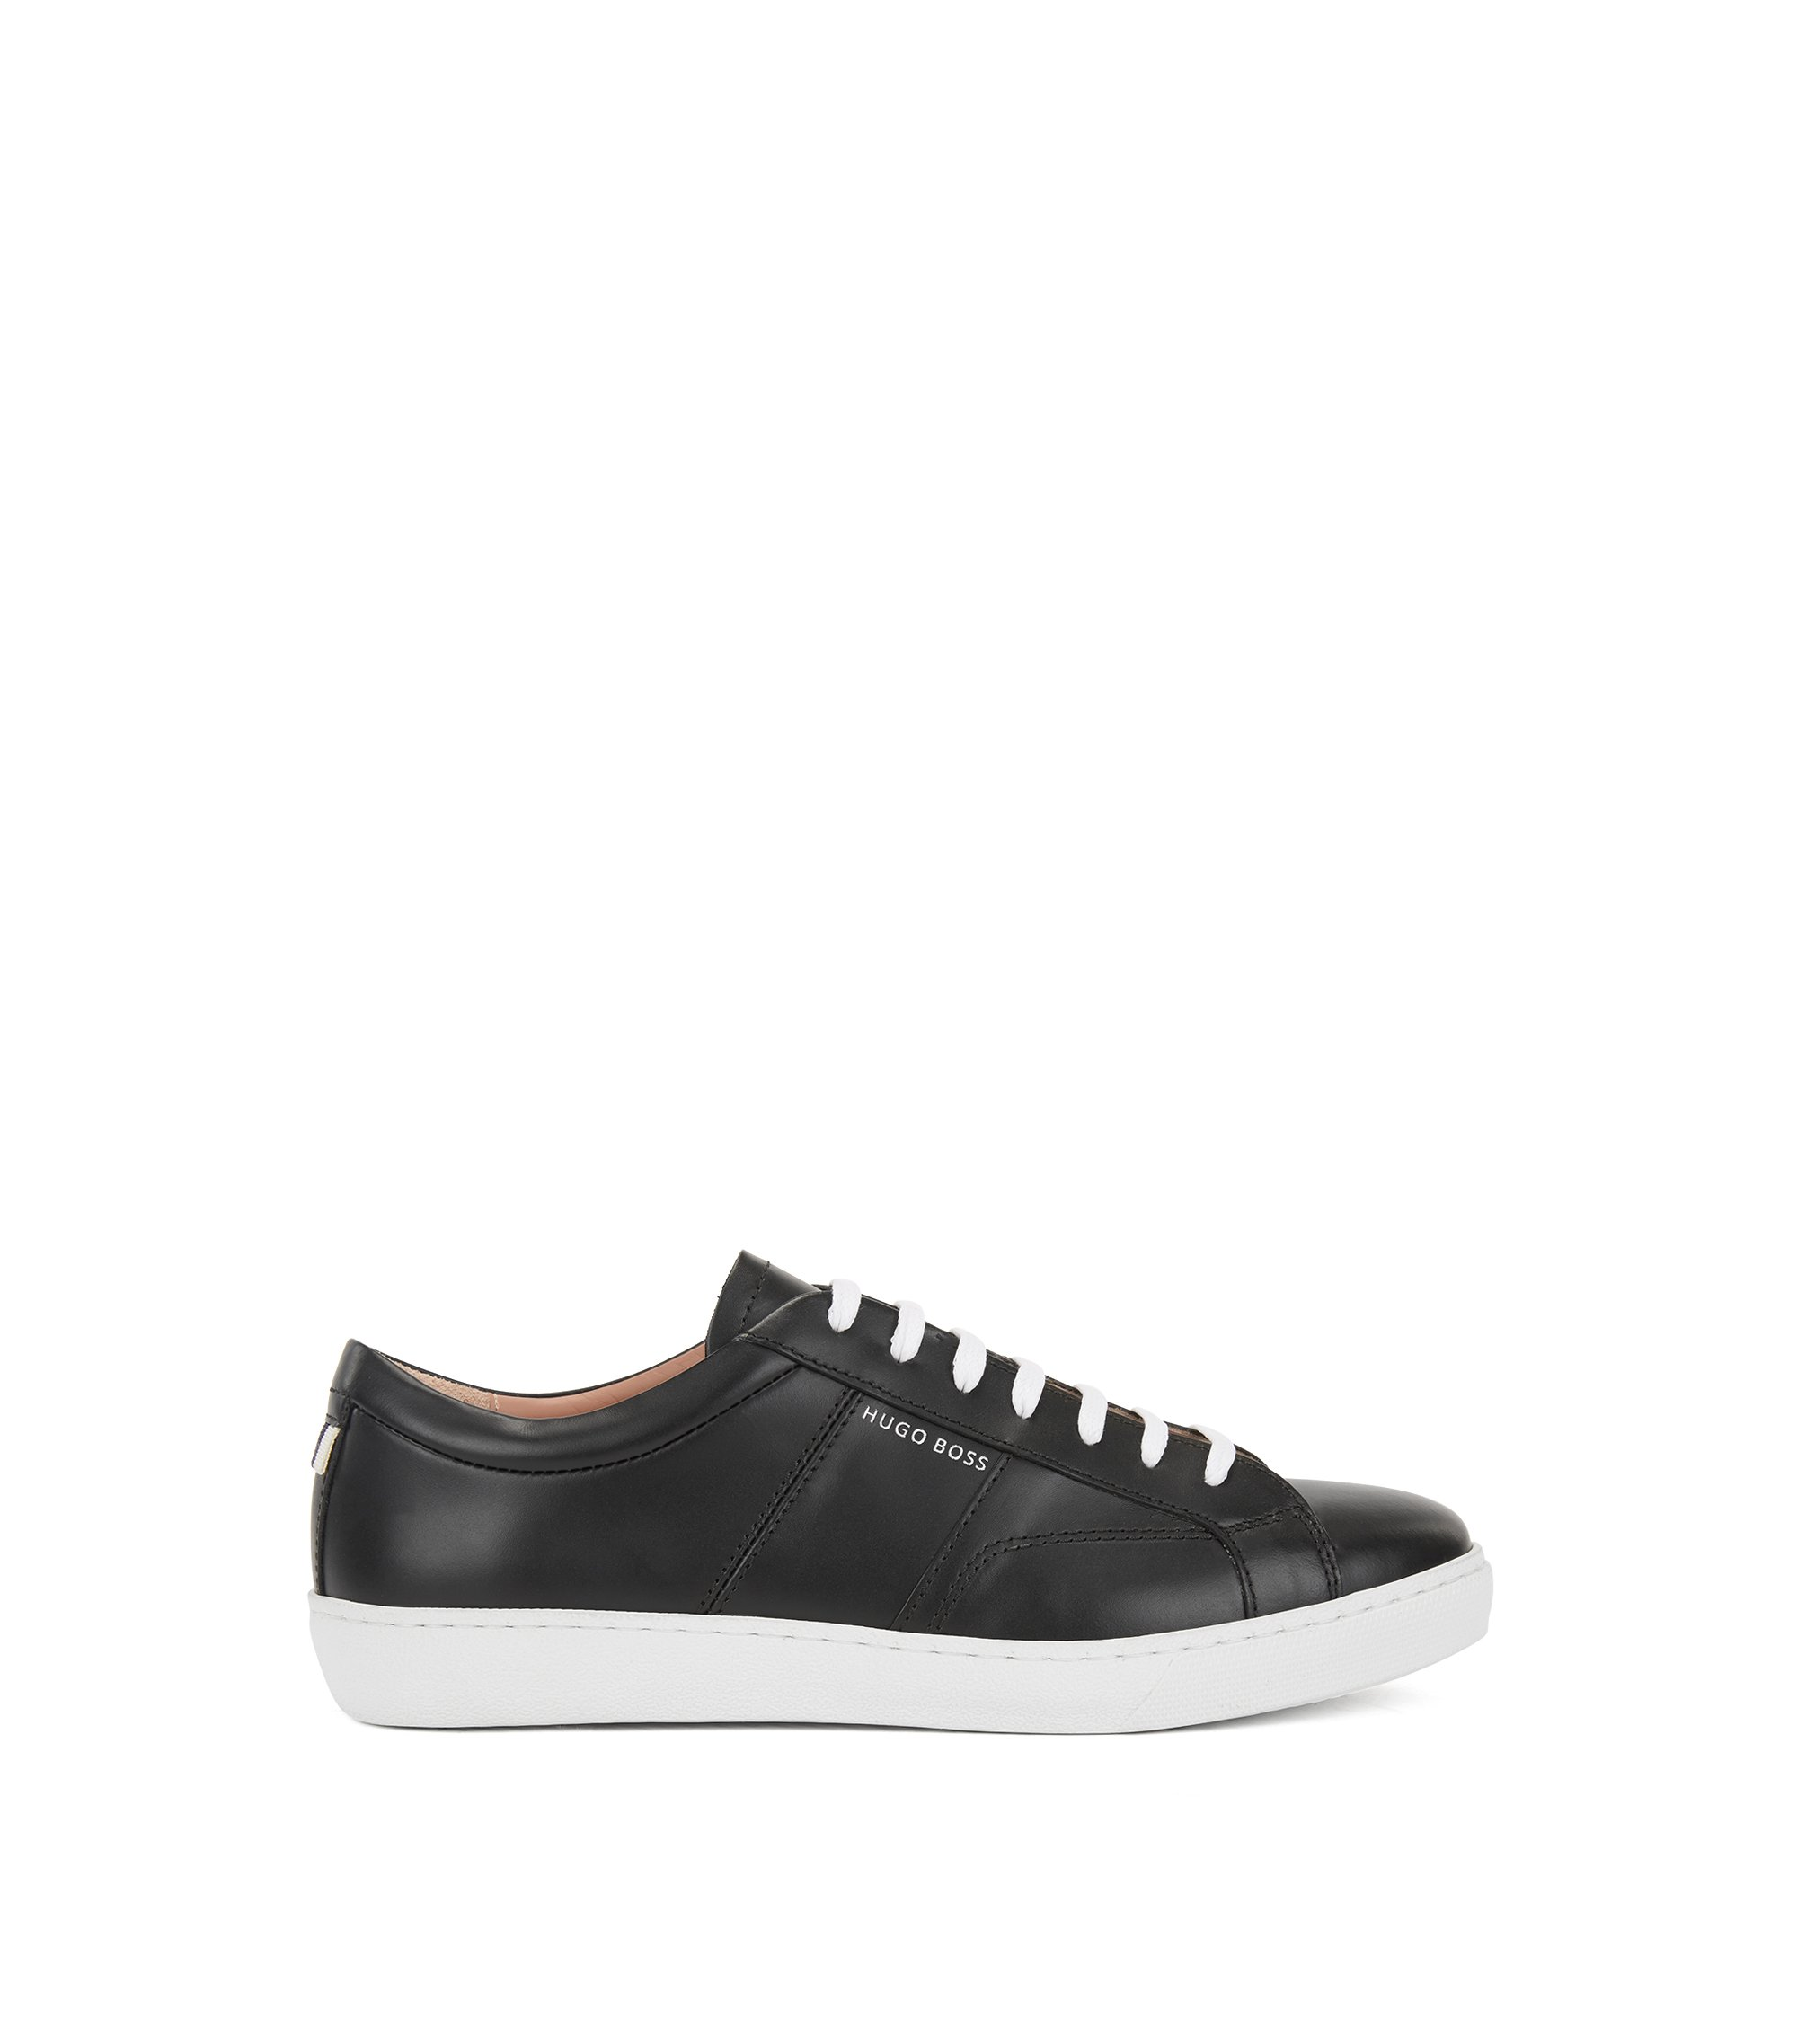 Sneakers low-top in pelle realizzata in Italia, Nero